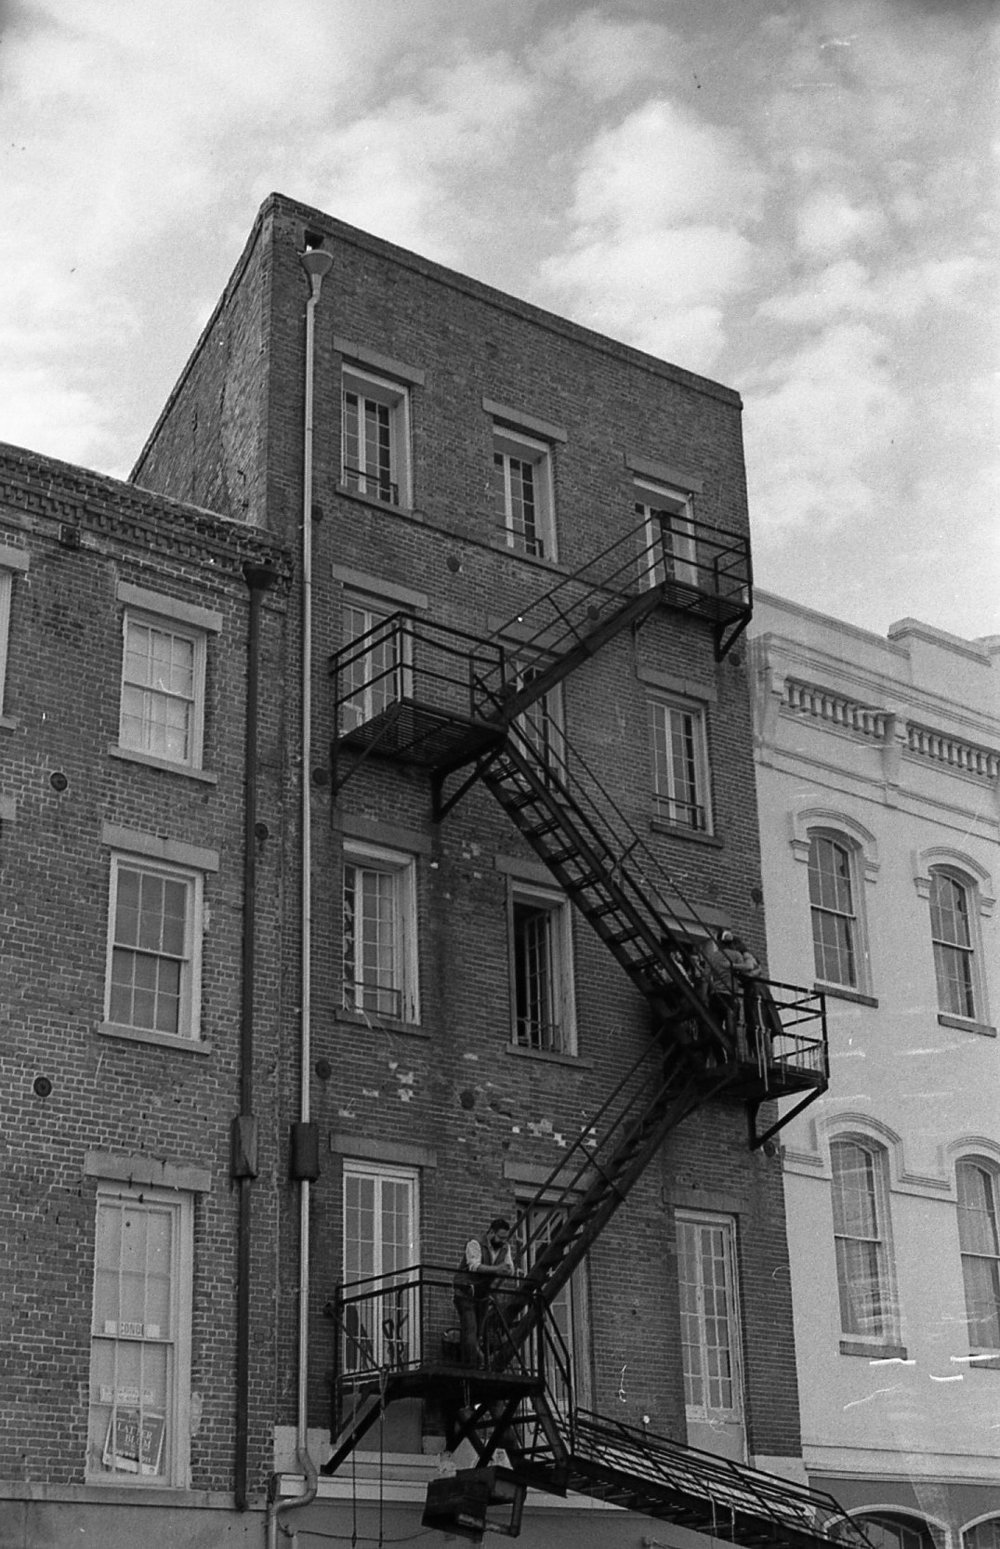 New Orleans on black and white film